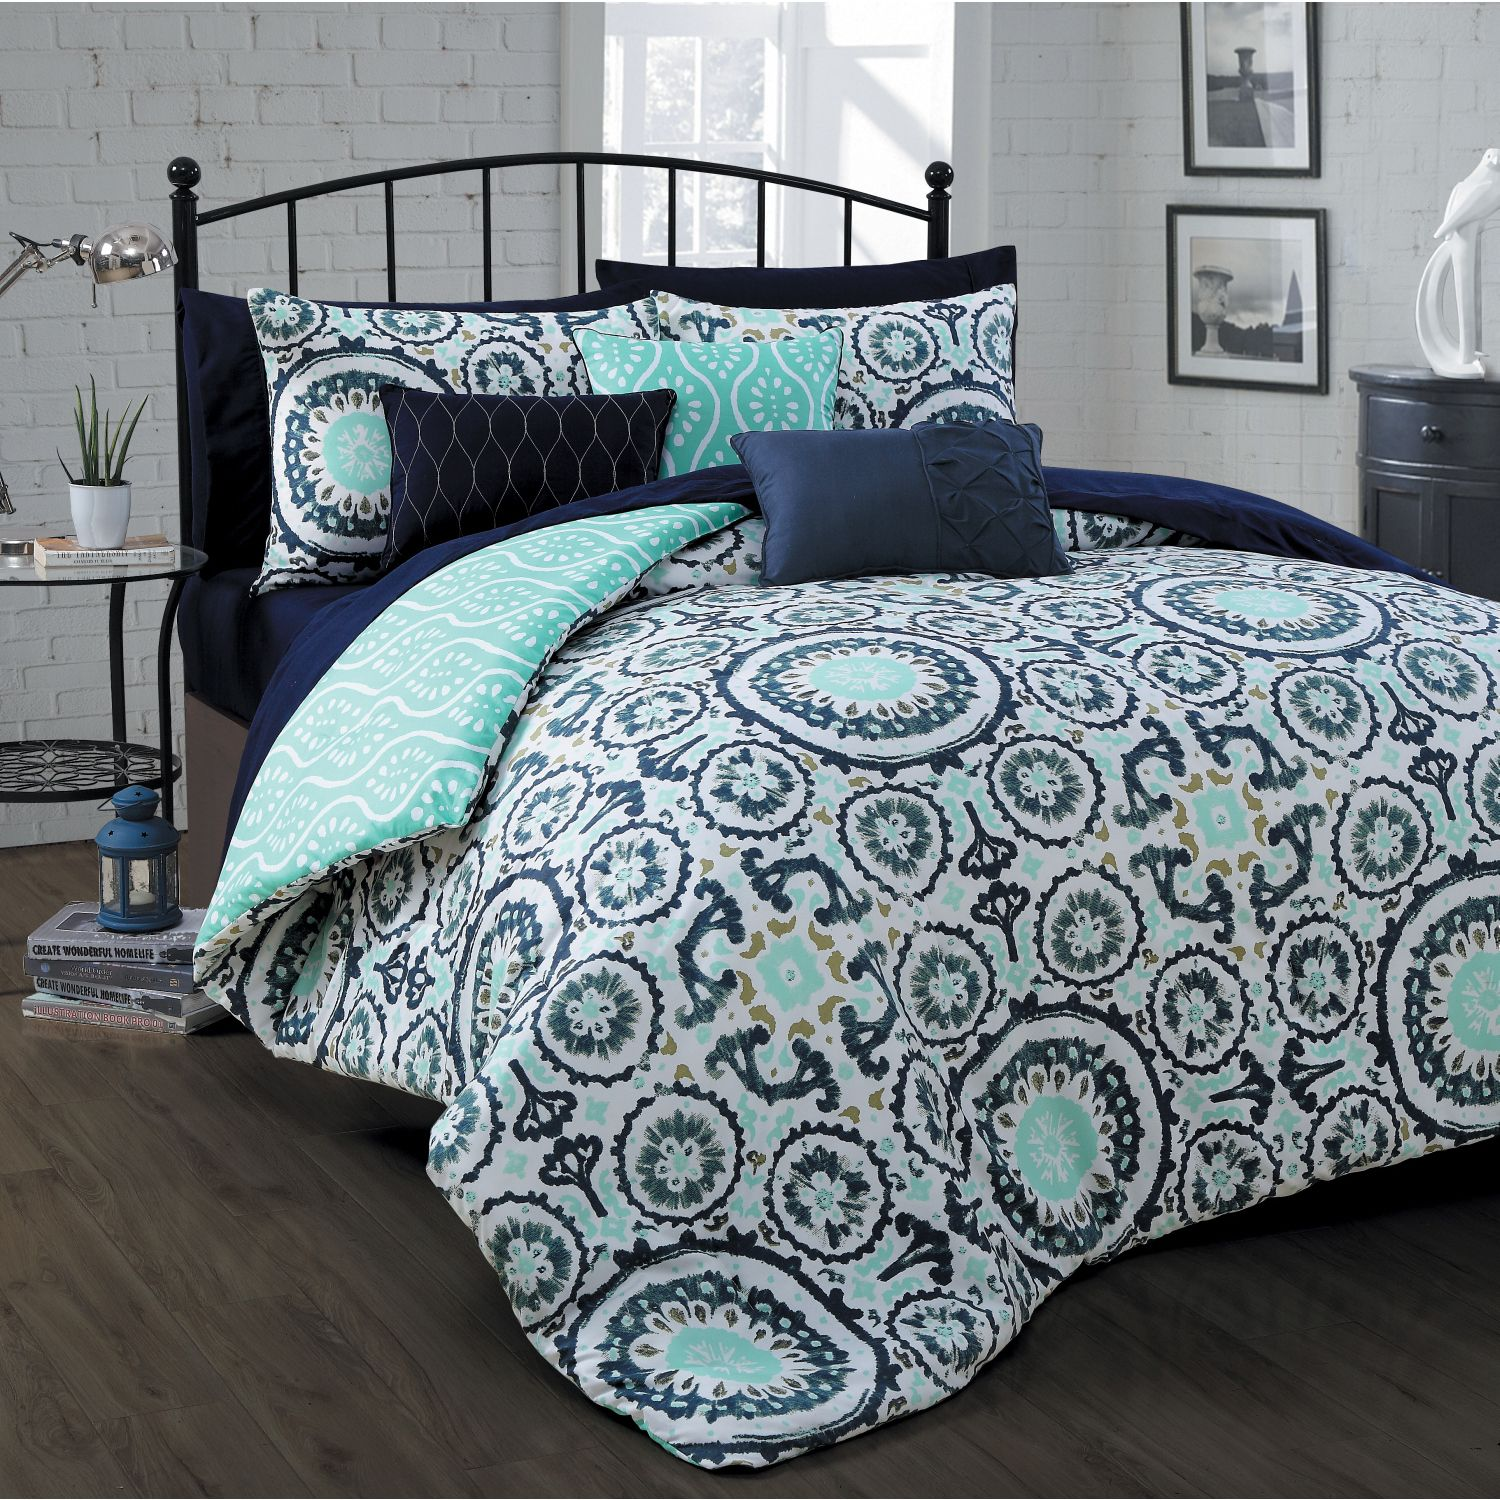 Dress your bed with this Leona 10 piece Bed in a Bag Set available